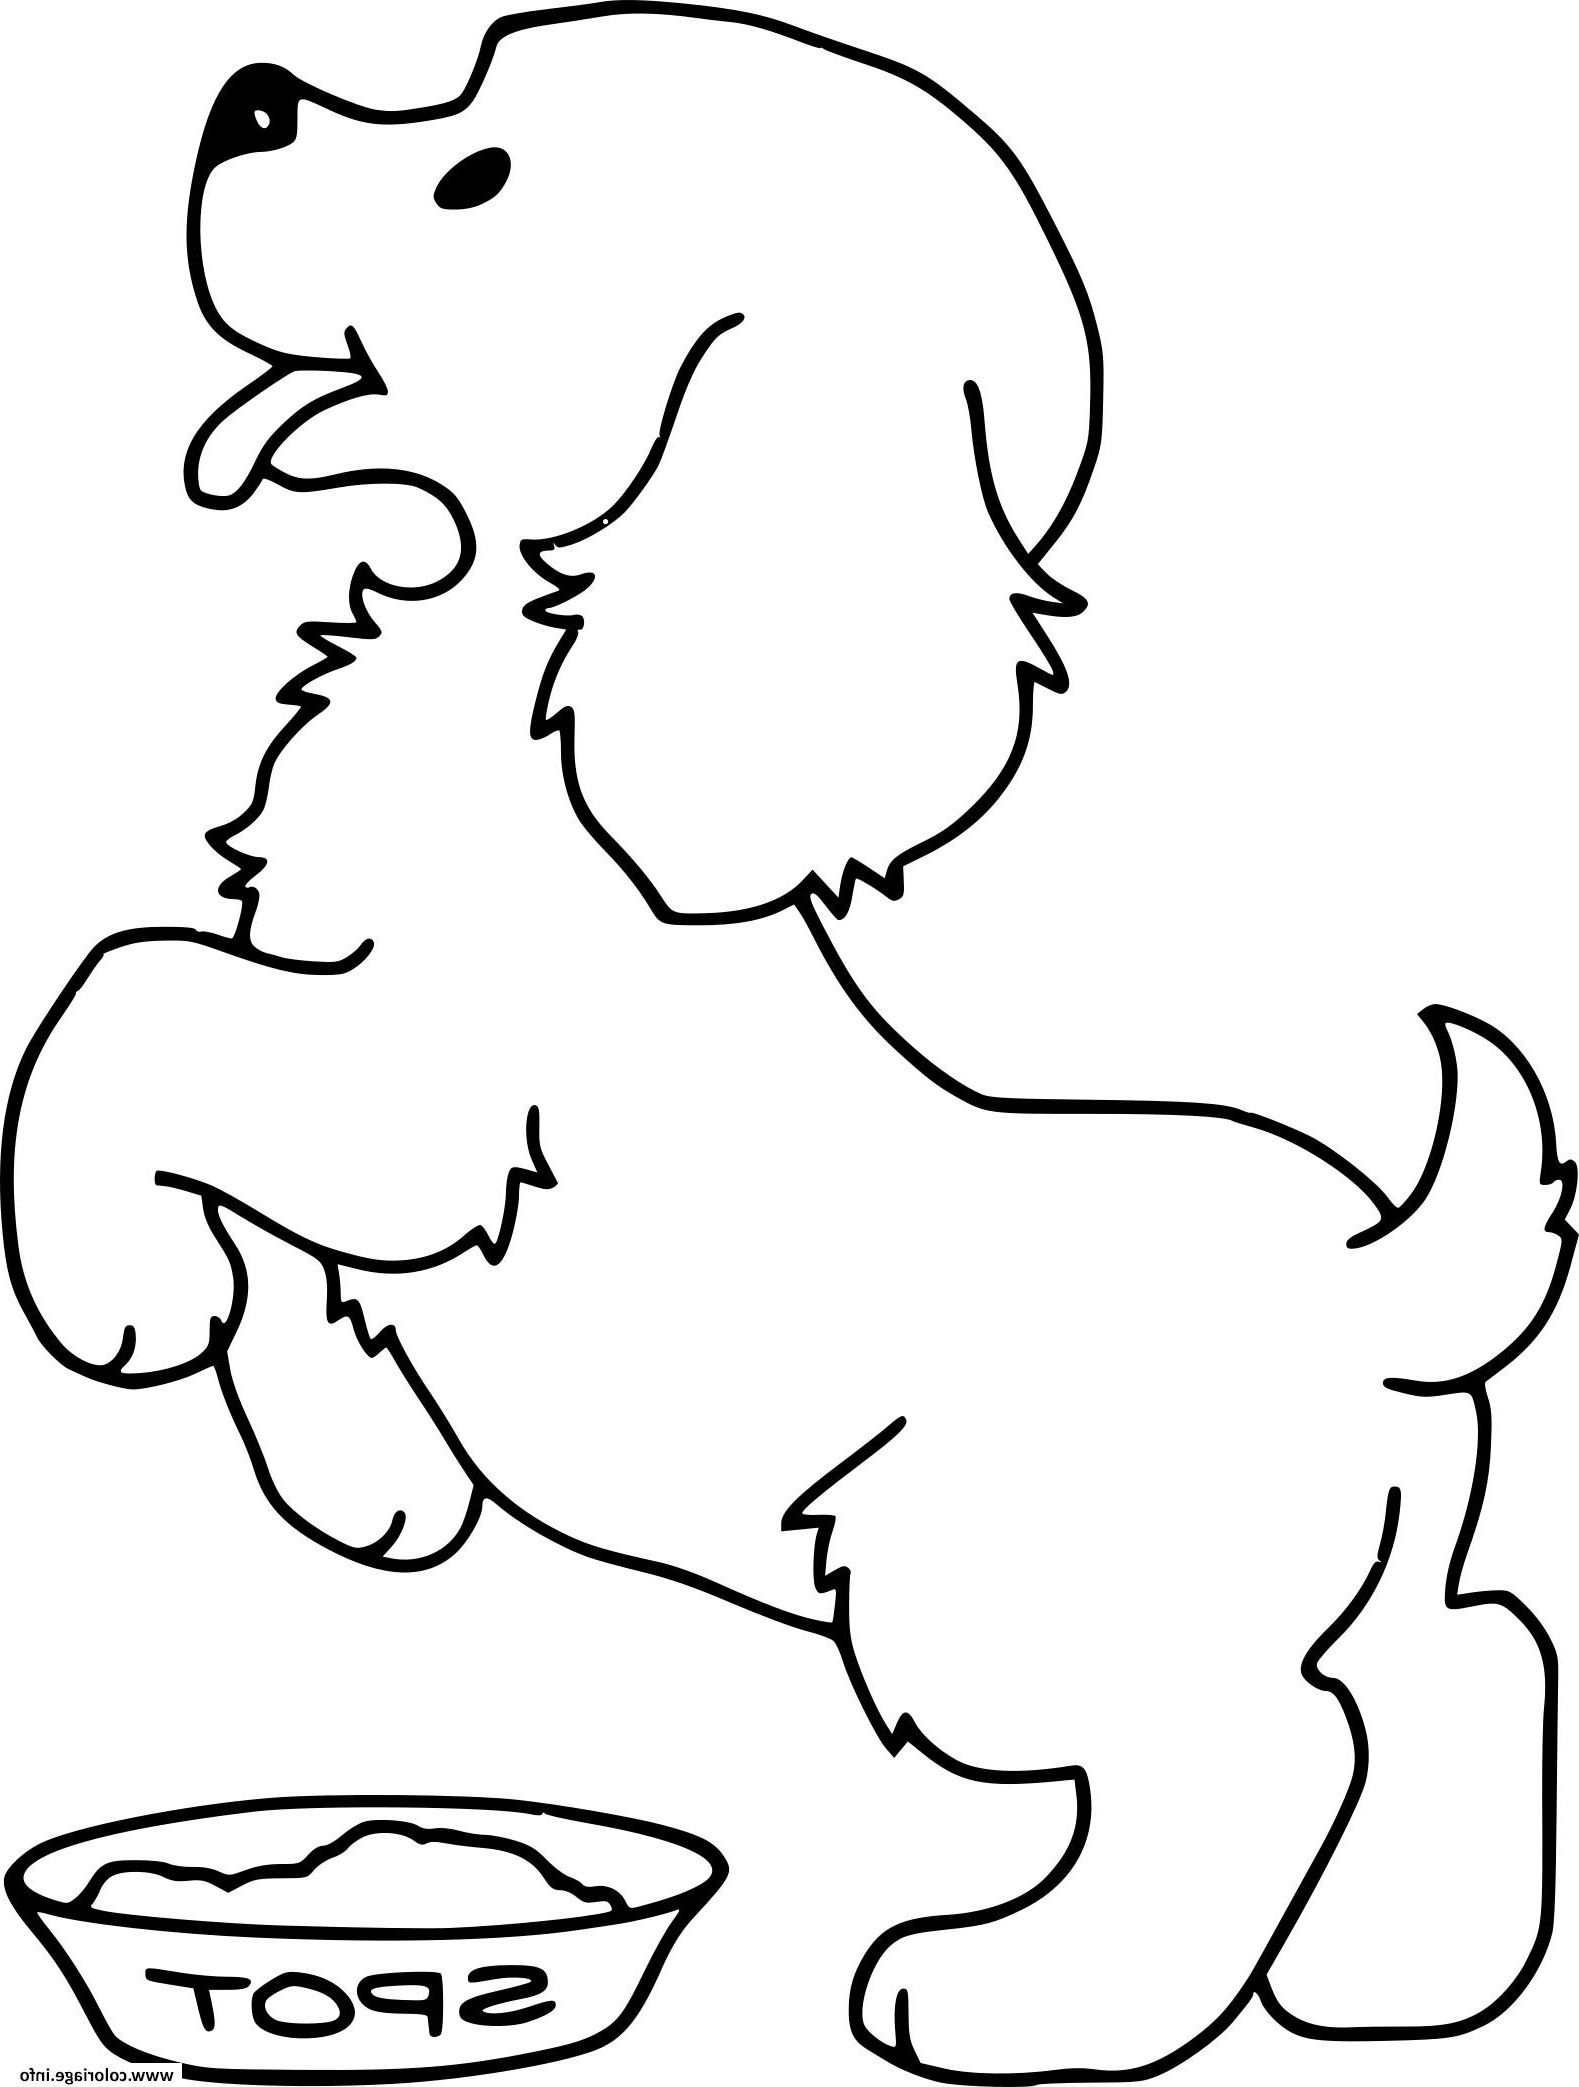 Chien Bebe Adorable Coloriage Dessin Dessina Dog Coloring Page